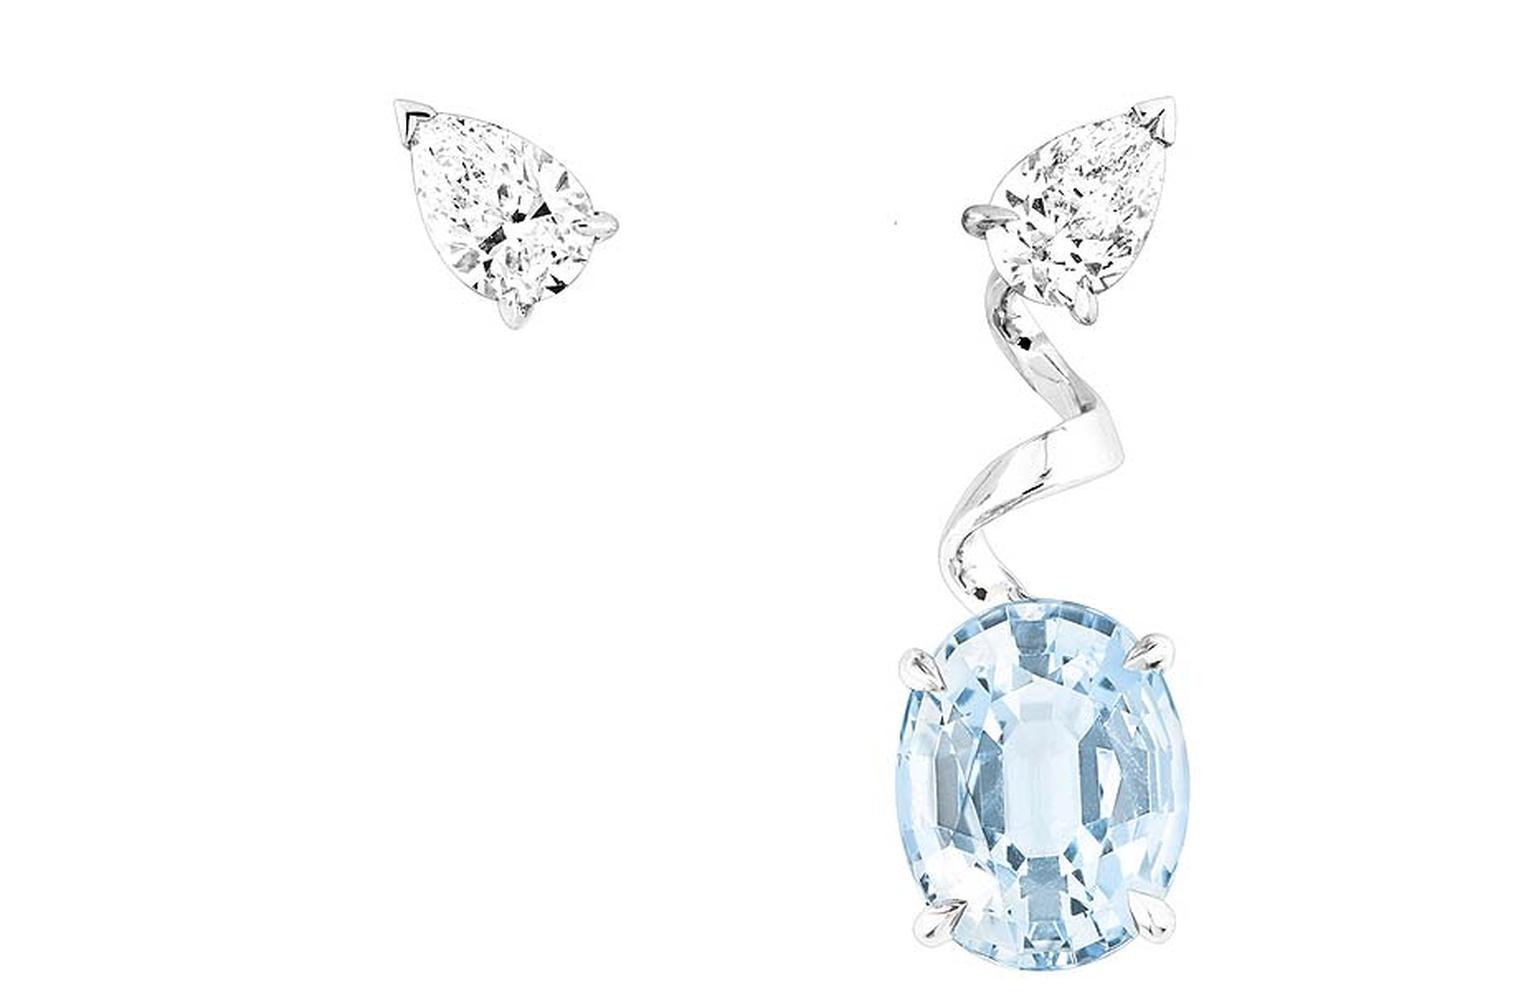 Dior earrings in white gold with diamonds and aquamarine from the new Diorama Precieuse collection.